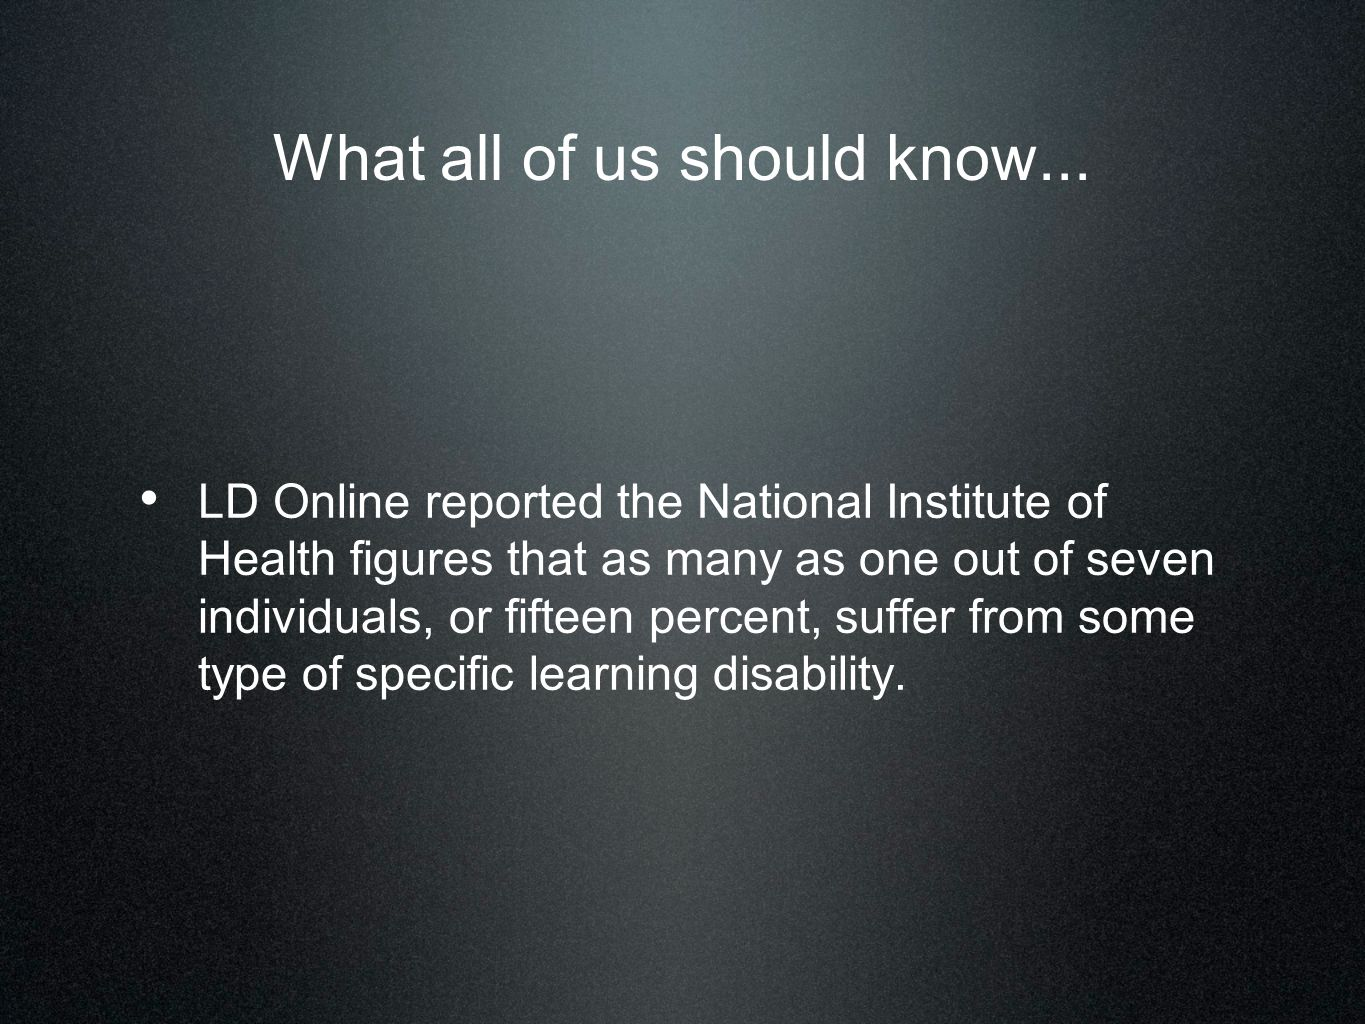 What all of us should know... LD Online reported the National Institute of Health figures that as many as one out of seven individuals, or fifteen per